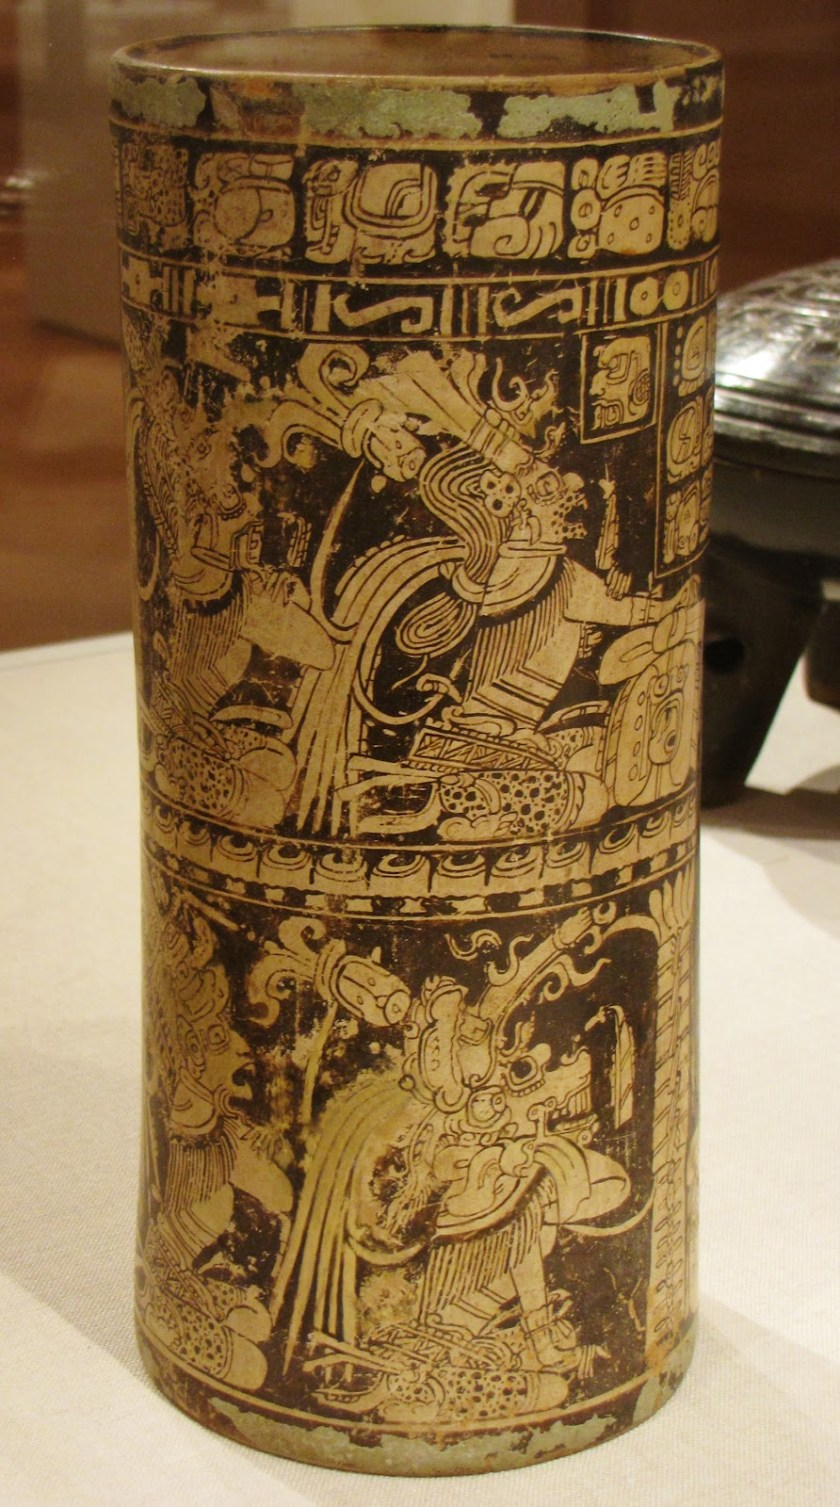 Vase of Seven Gods, Ah Maxam (active mid-late 8th century), ceramic and pigment, 750/800 CE, Late Classic Maya; vicinity of Naranjo, Petén region, Guatemala